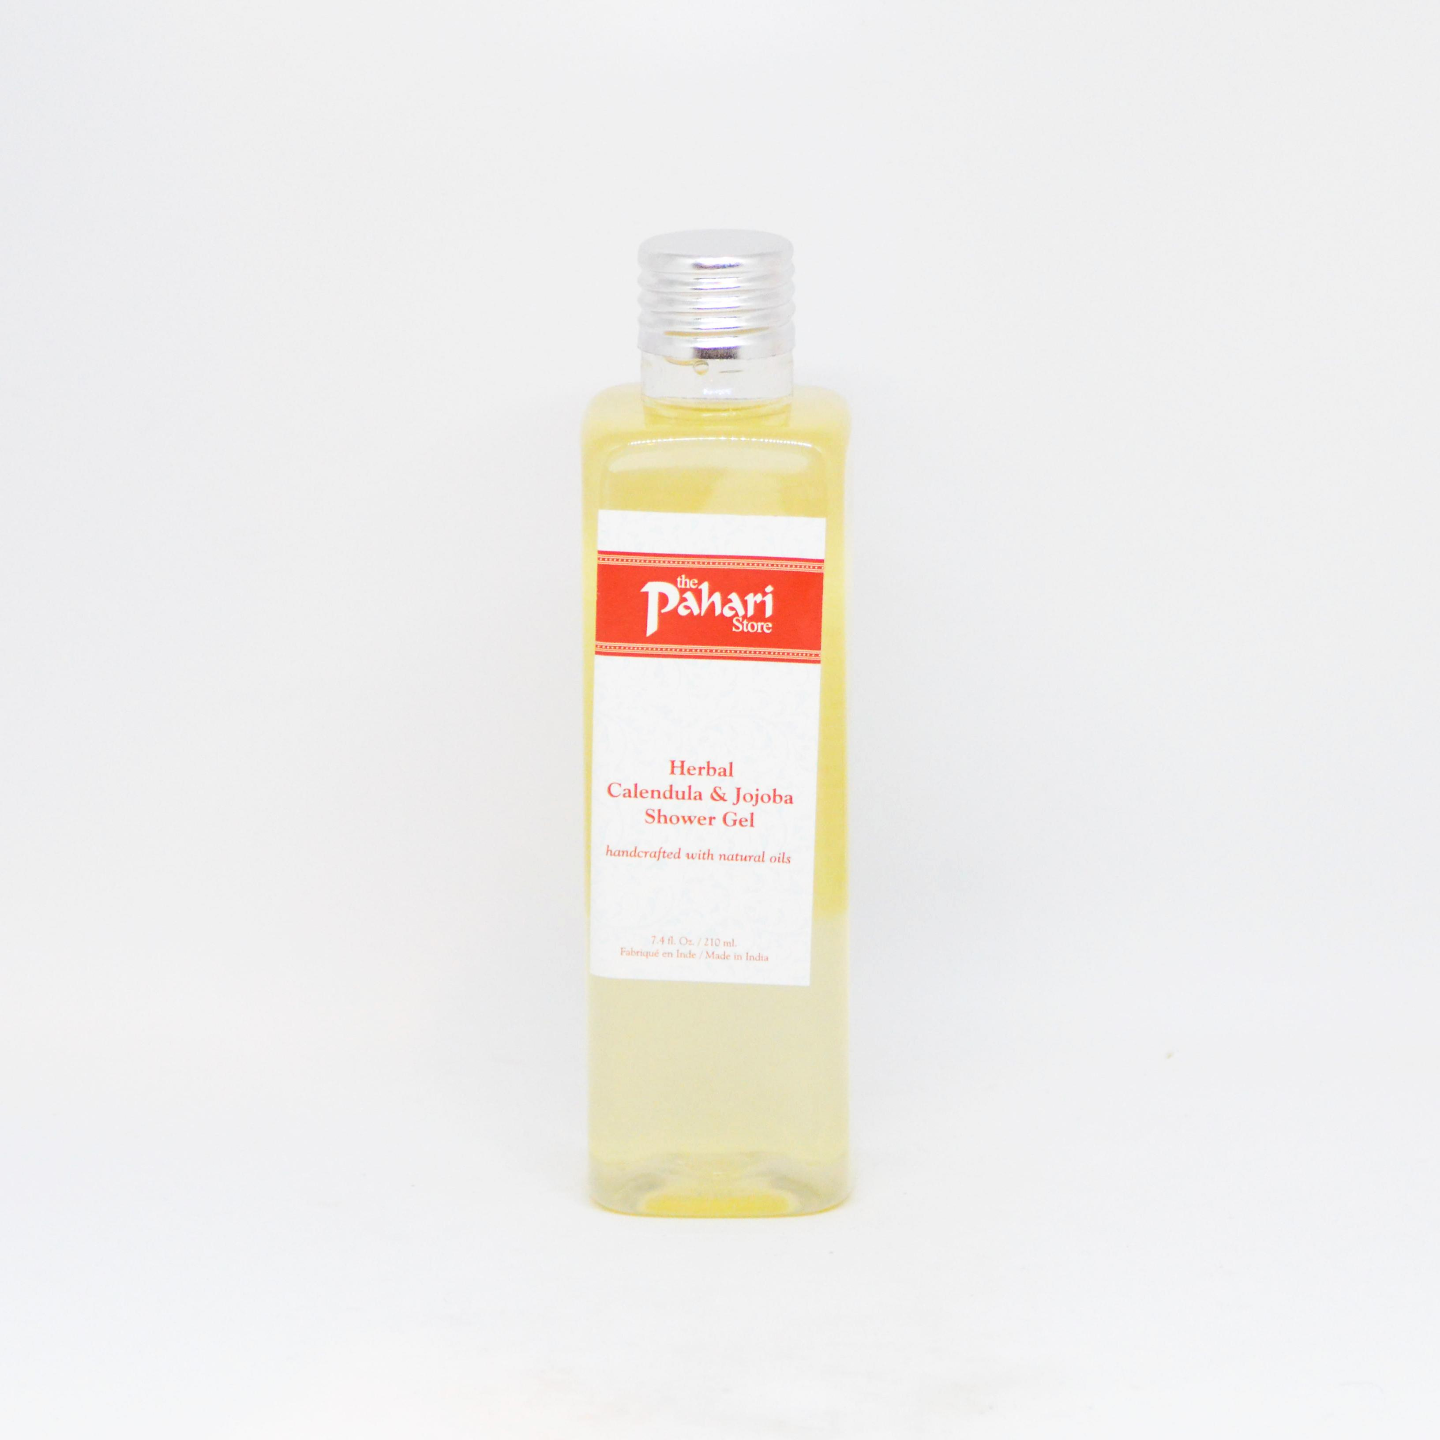 Herbal Calendula & Jojoba Shower Gel 210ml